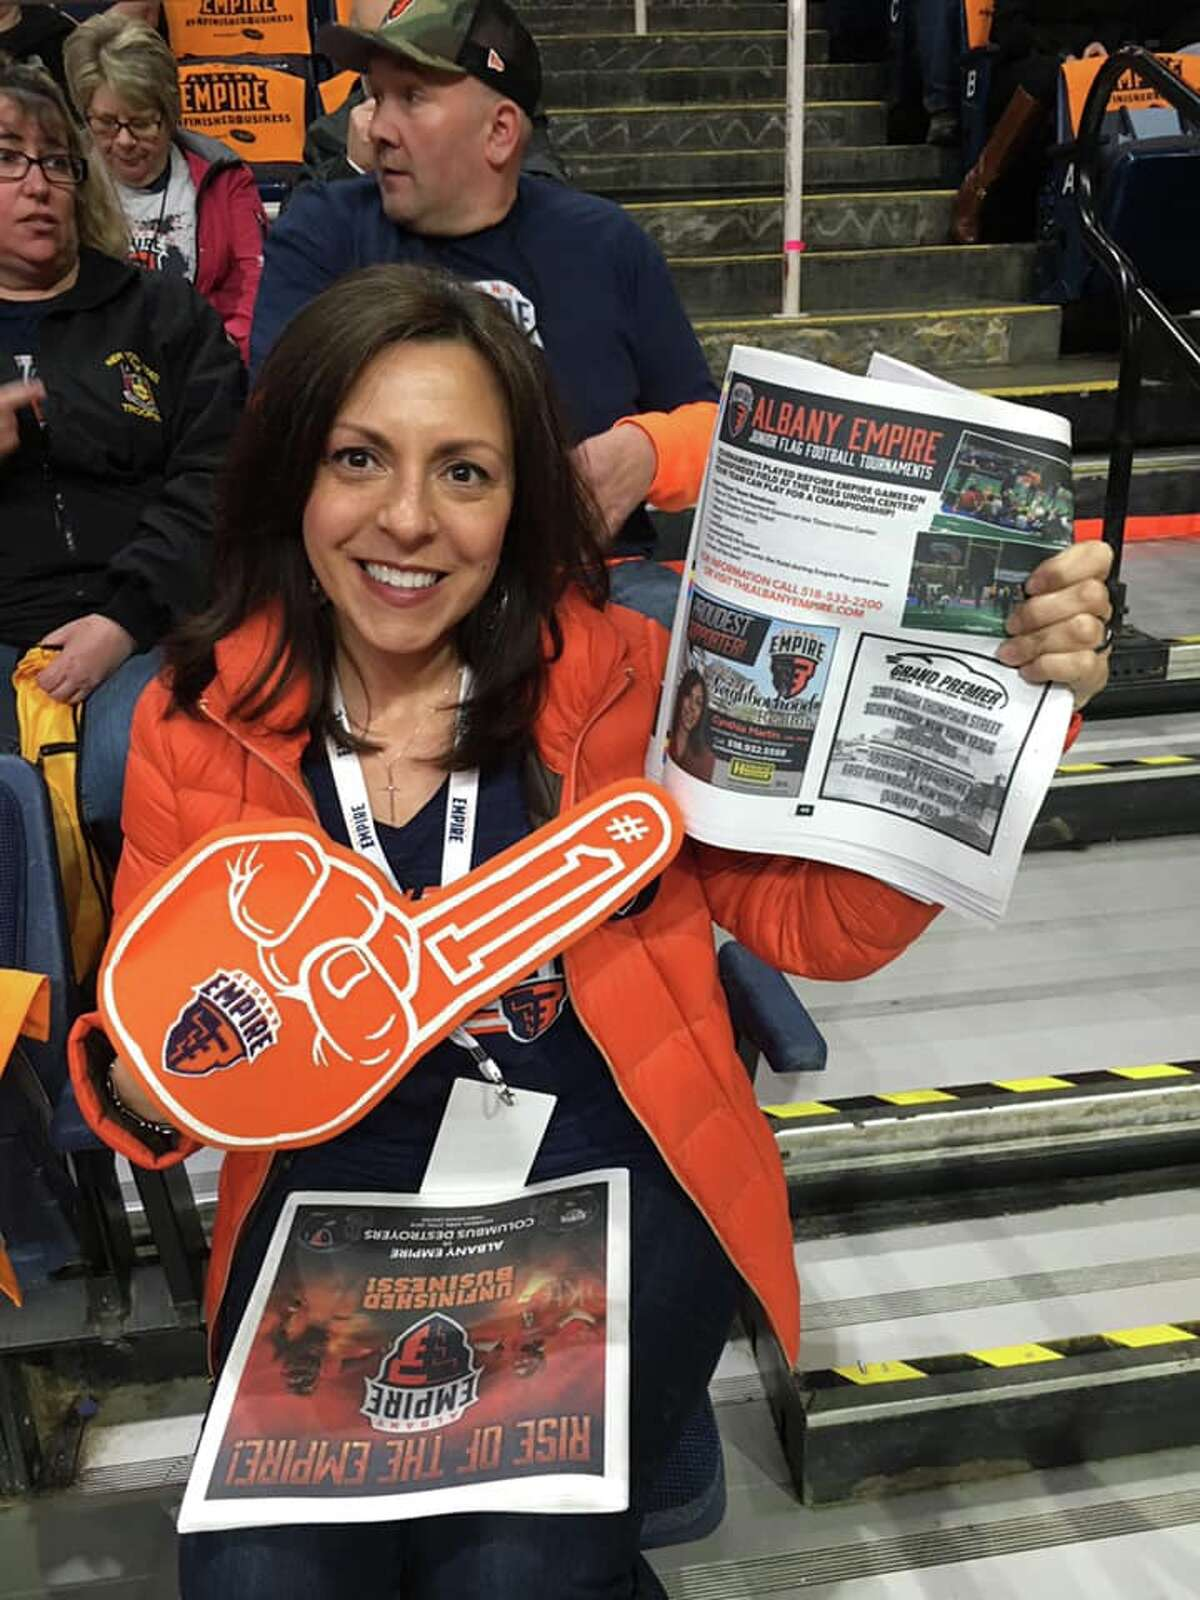 During Arena Football season, you would've found me screaming my head off at every Albany Empire home game! I loved them so much, and sponsored the team from the beginning.